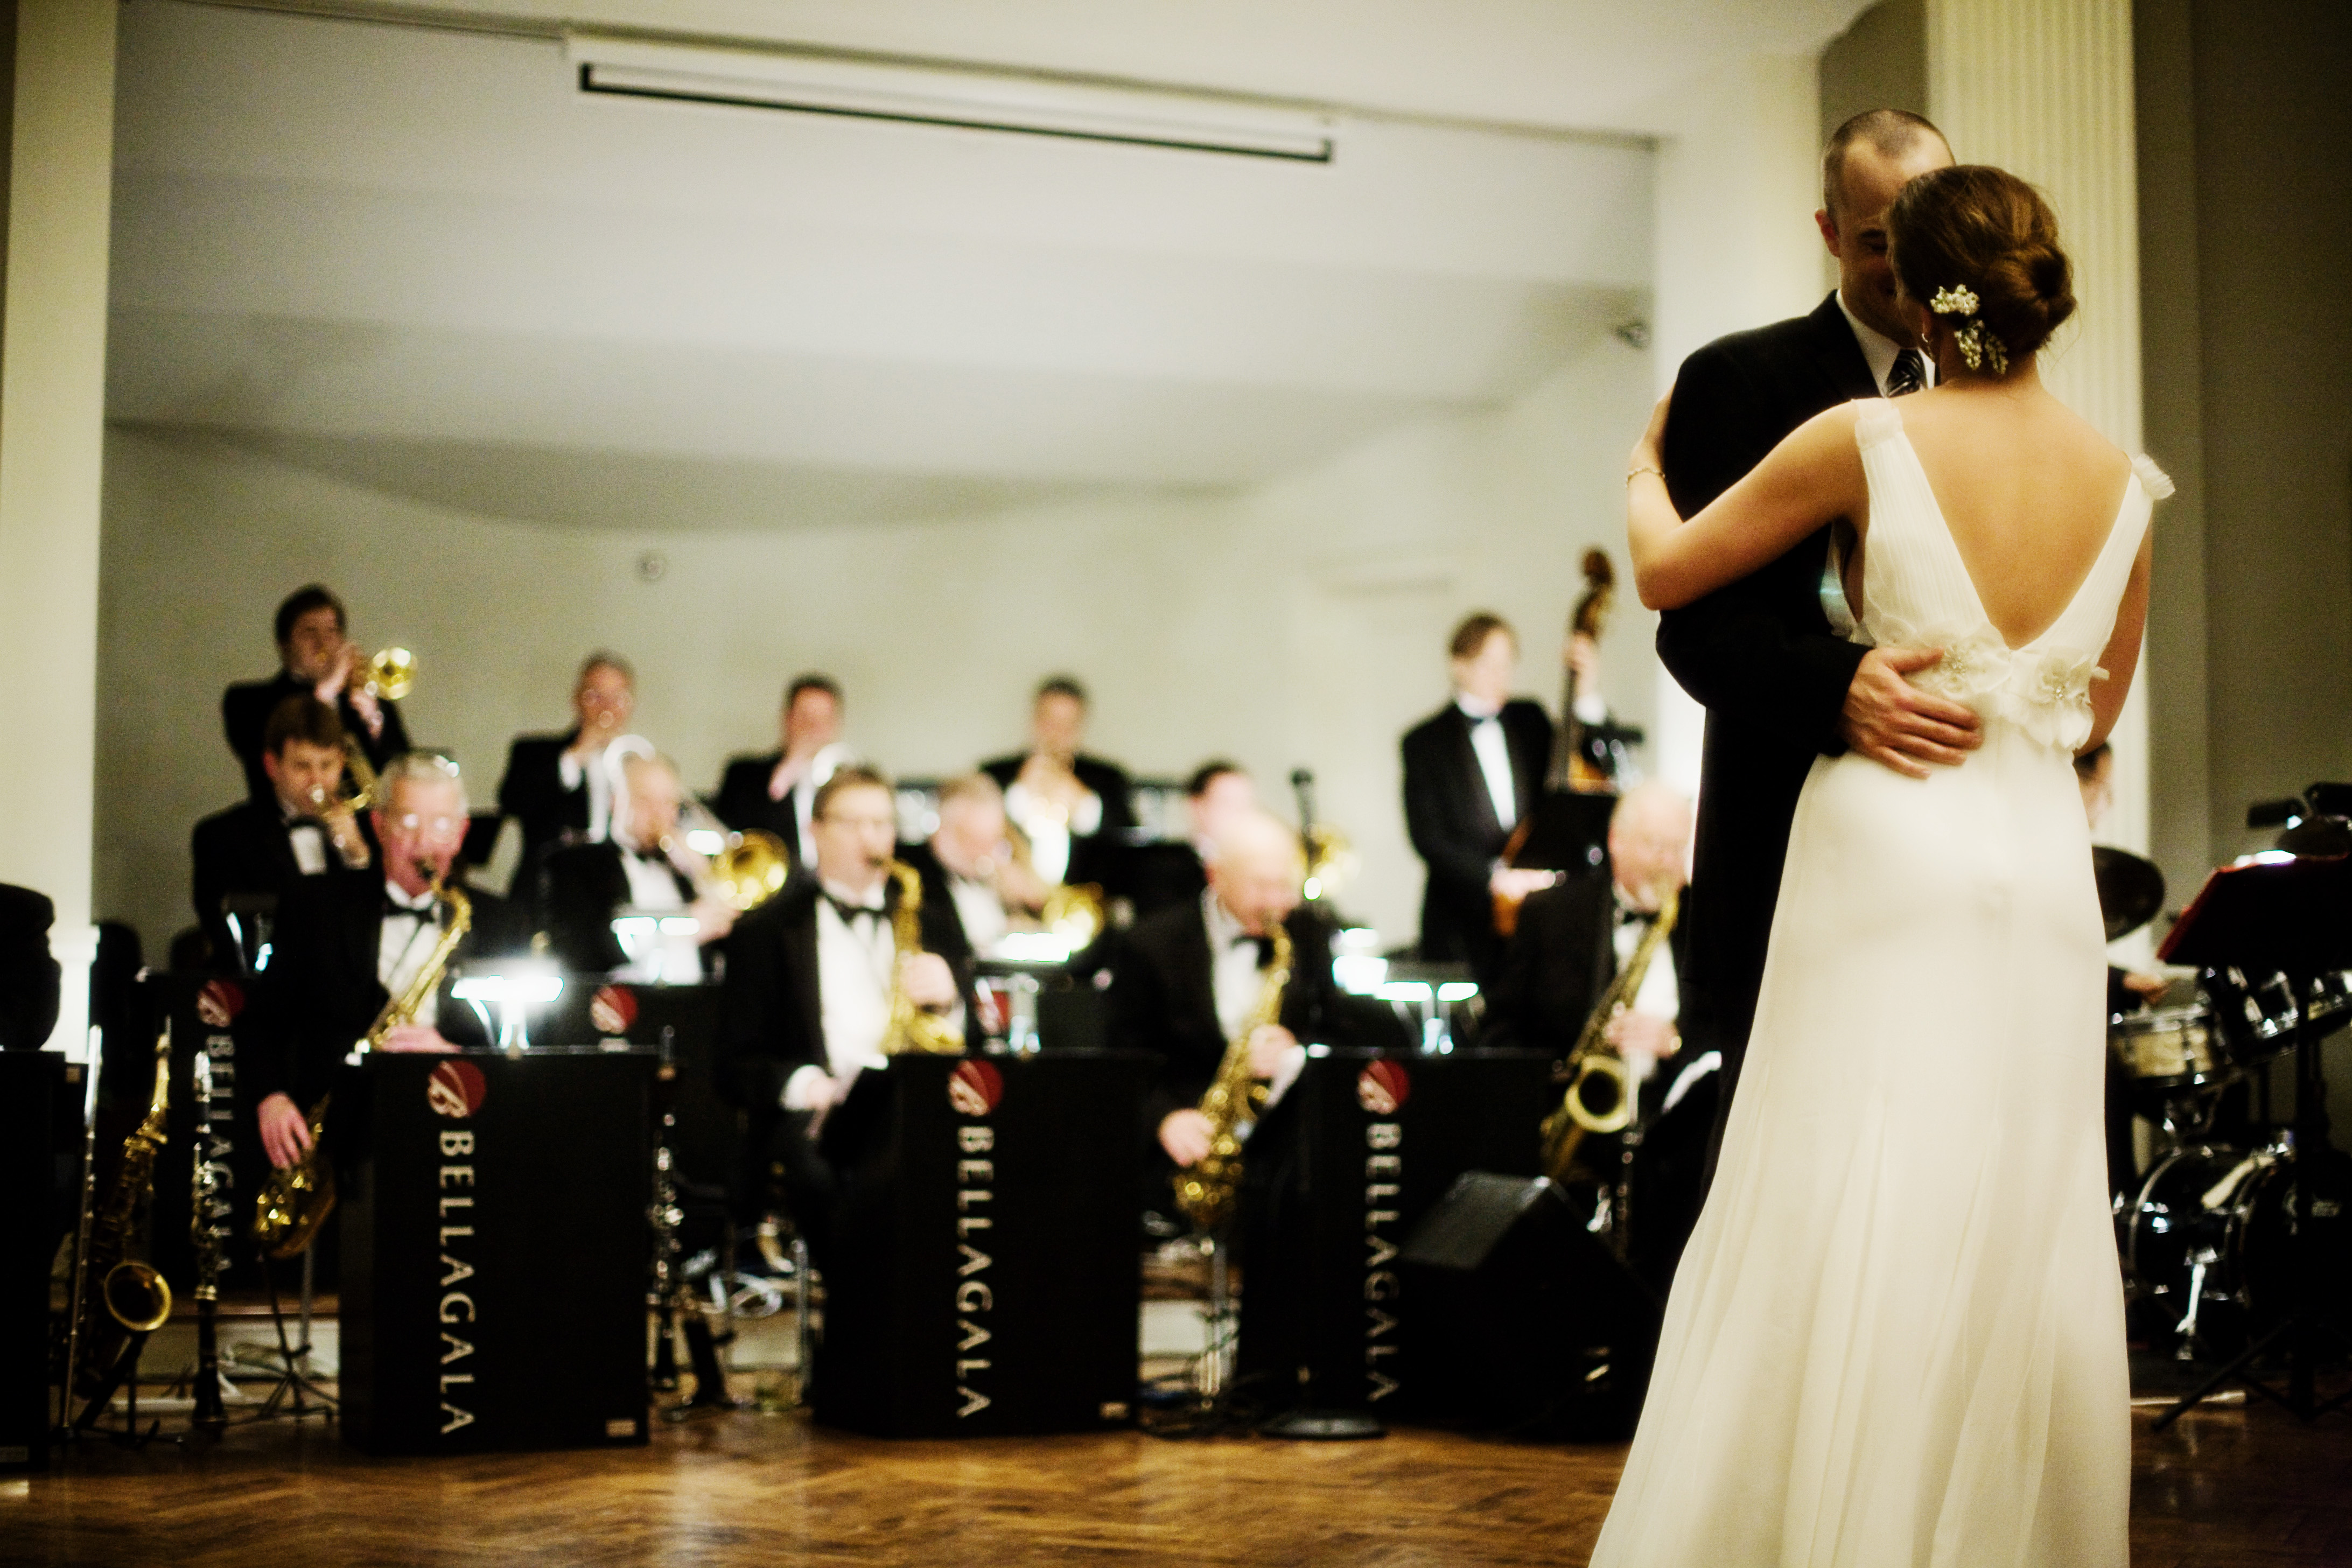 Choose your perfect wedding day music